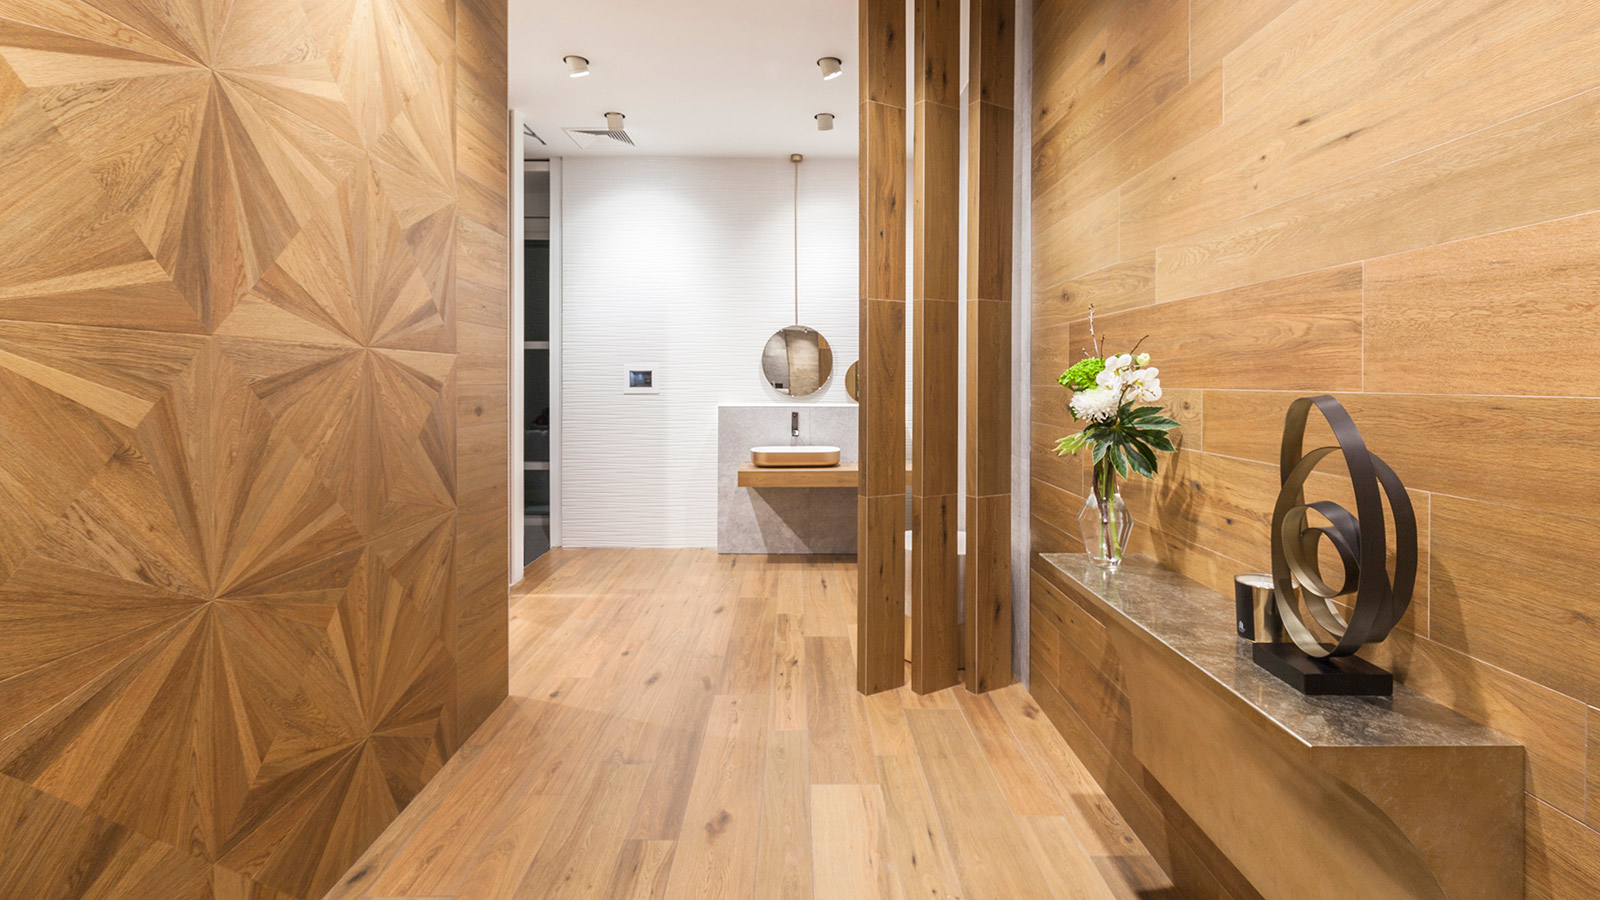 The new line of Starwood inspired by wood